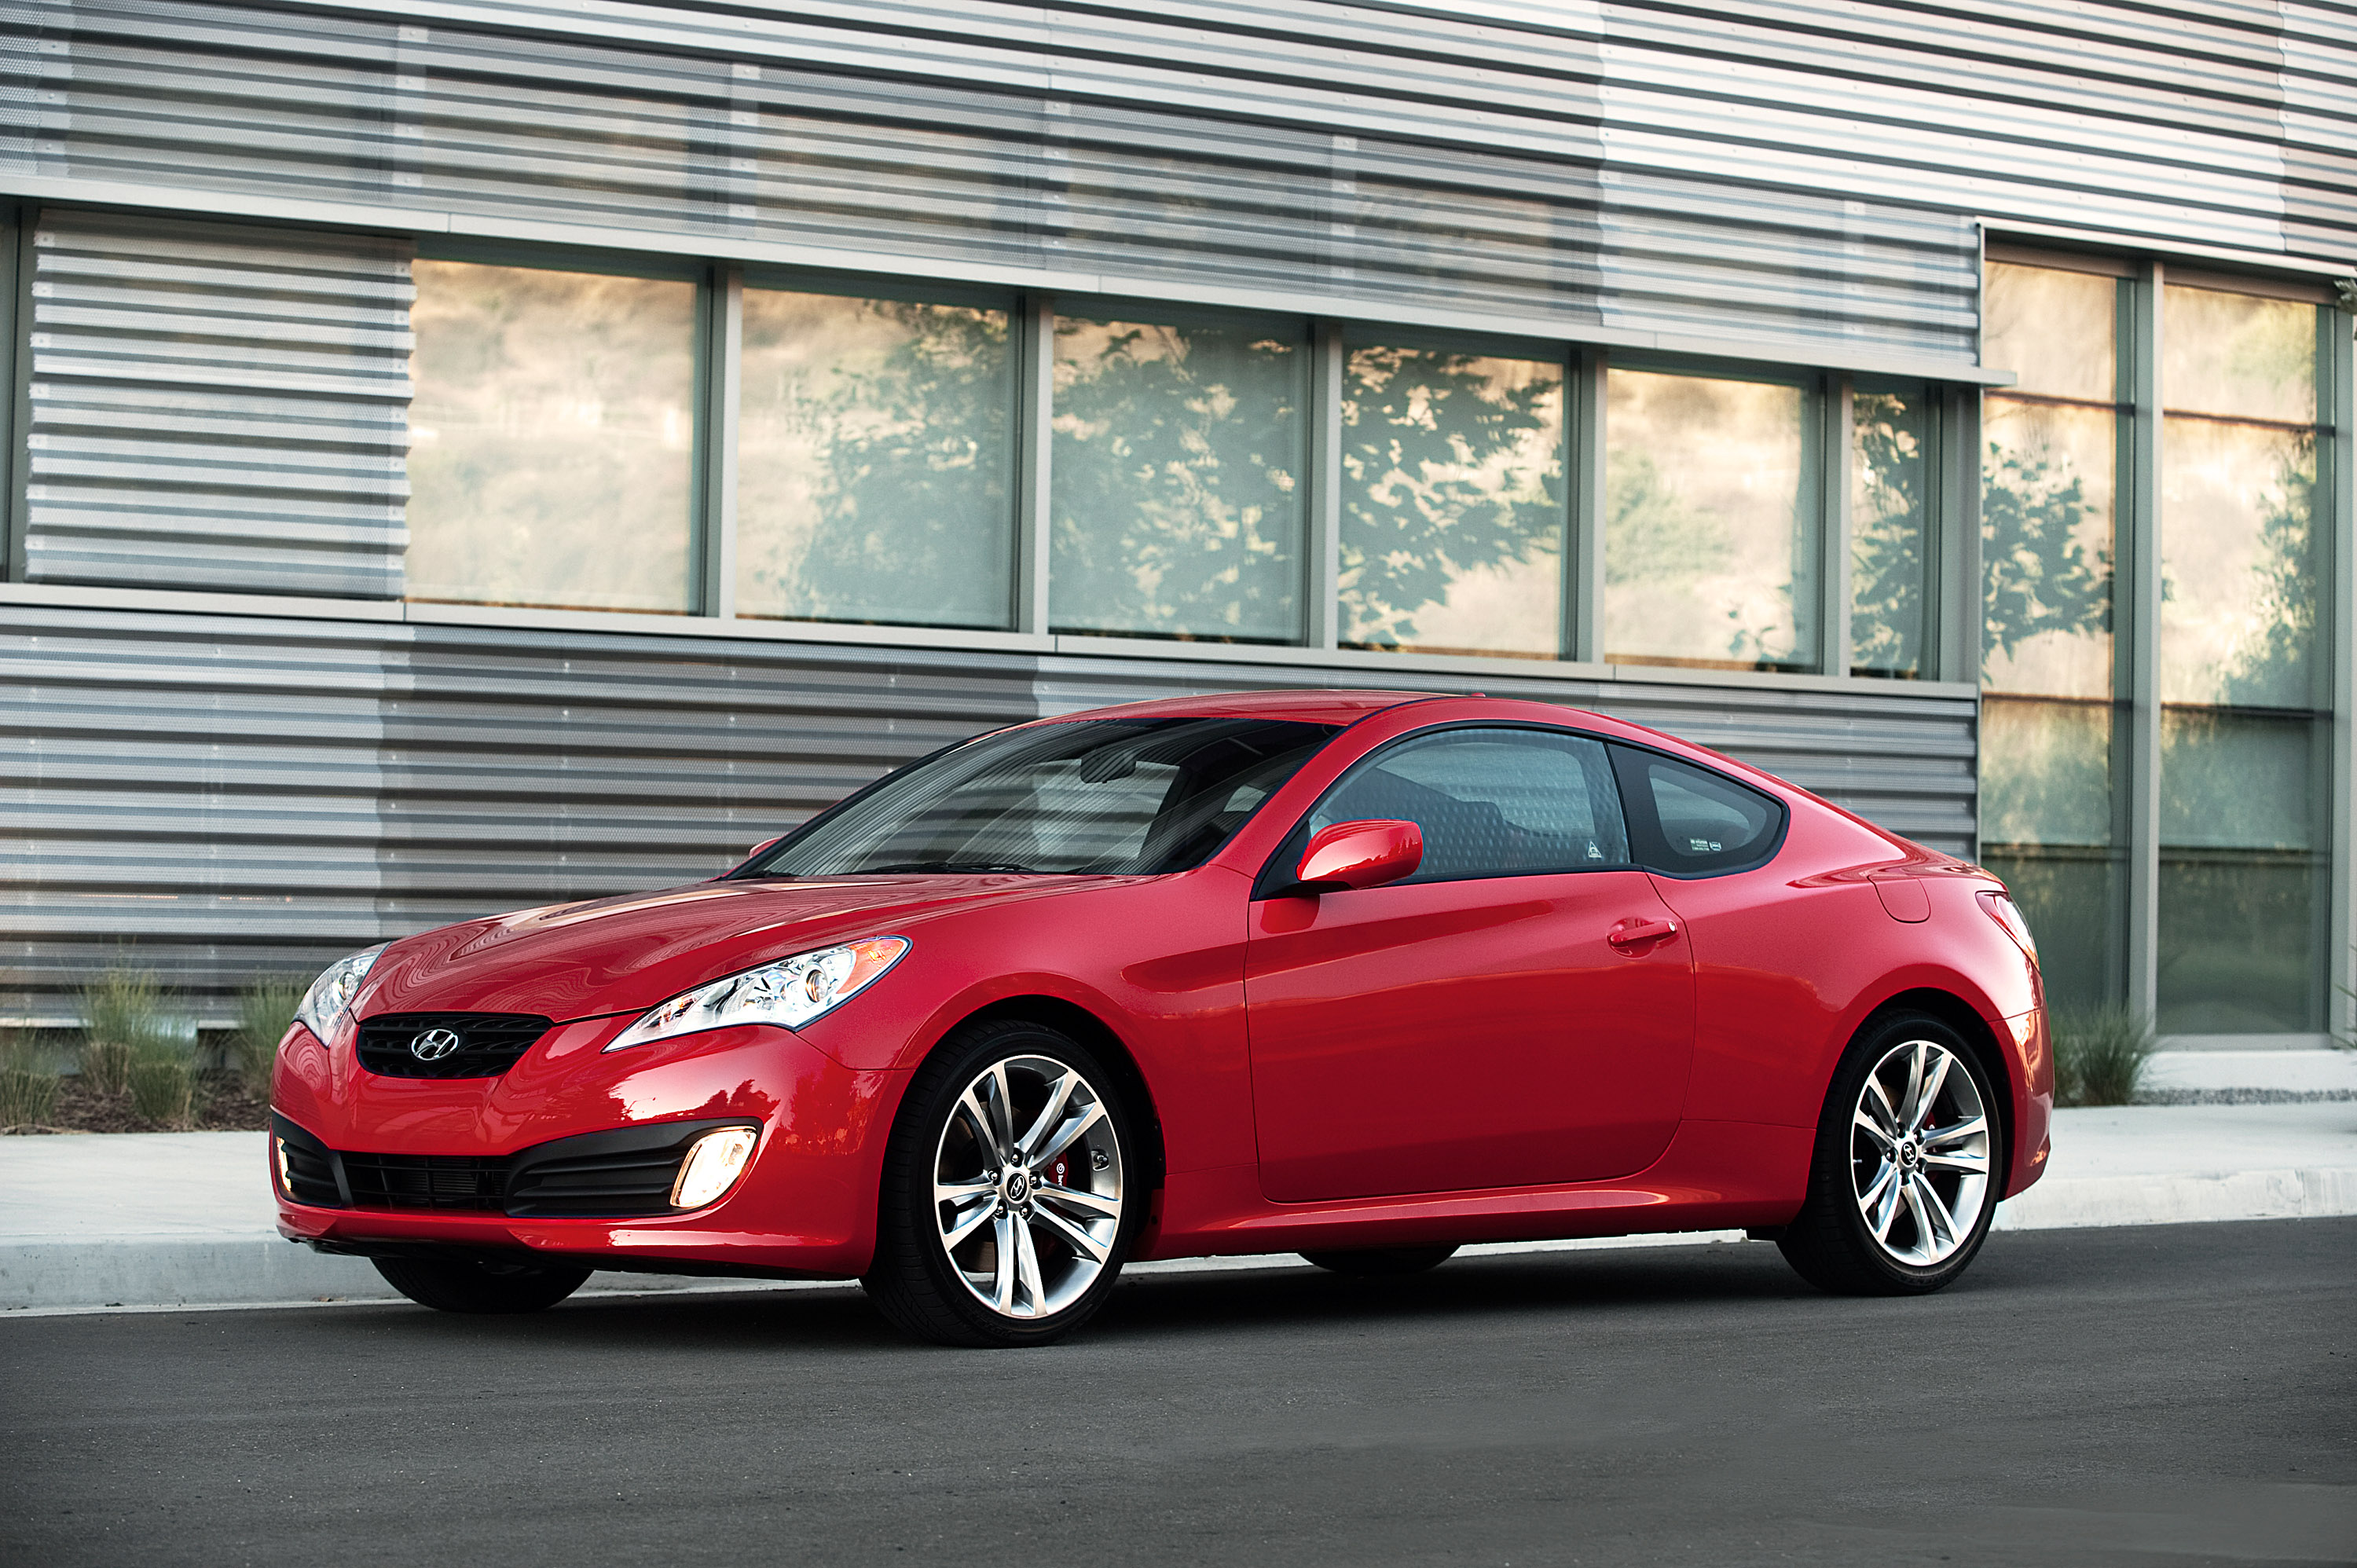 Index of /img/2011-hyundai-genesis-coupe-3-8-r-spec